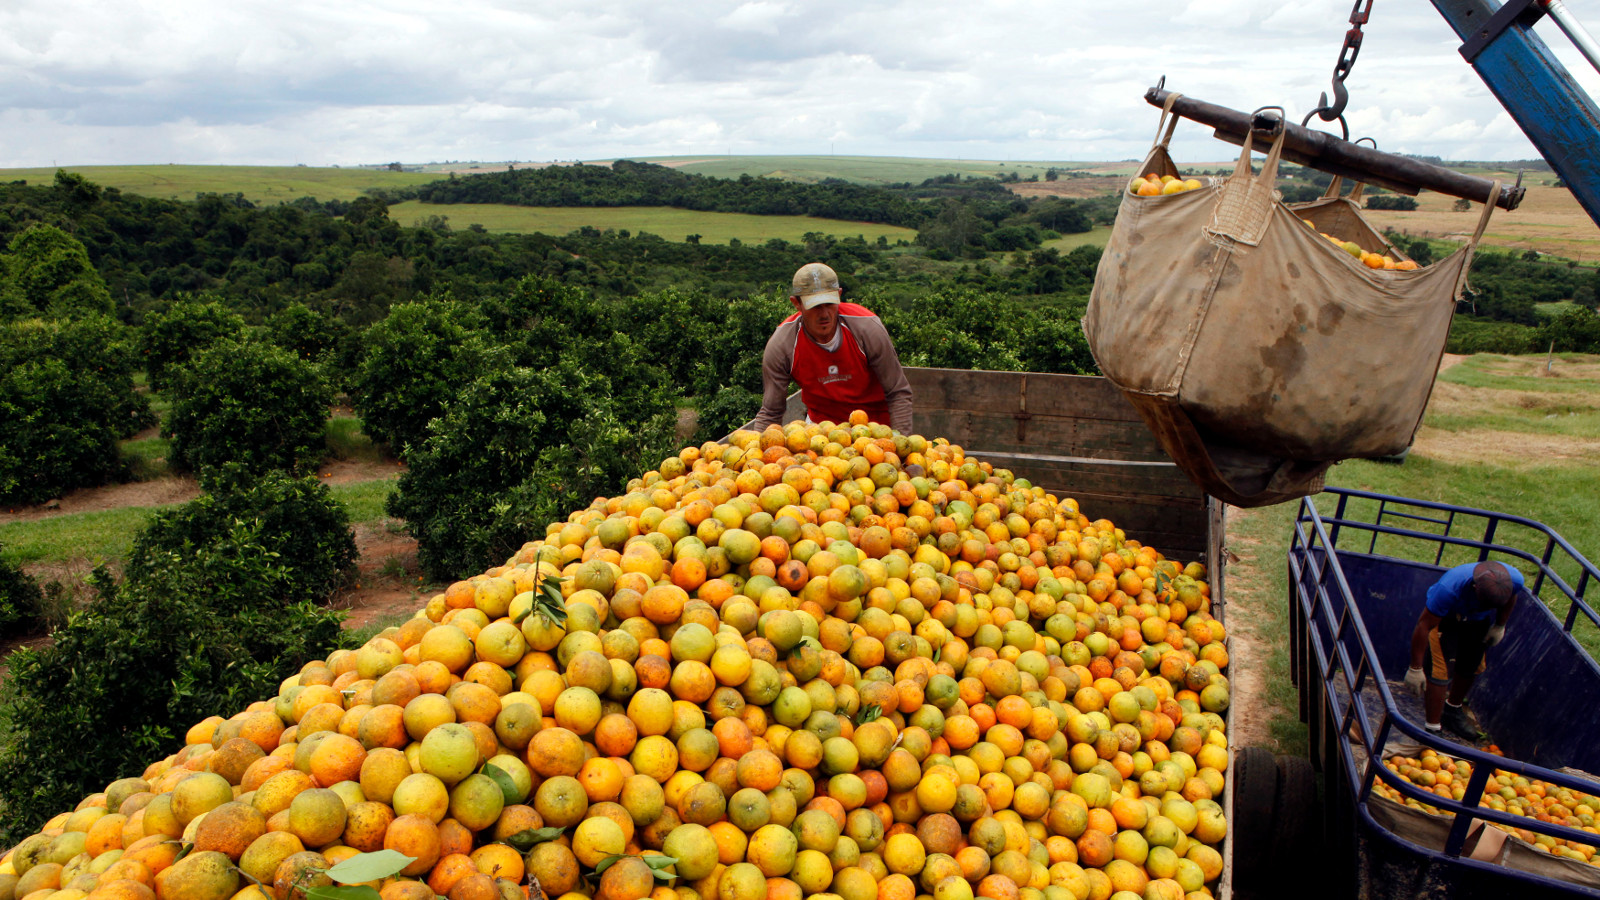 Workers load a truck with oranges on a farm in Limeira January 13, 2012. Brazil, the world's top orange juice exporter, will continue to depend on a fungicide that is banned in the United States even though its use jeopardizes exports to the U.S. market, a researcher and a producer said on Thursday. Lawyers for Brazil's juice industry, which exports more than $2 billion worth globally each year, are talking to U.S. officials to try to come up with a solution.